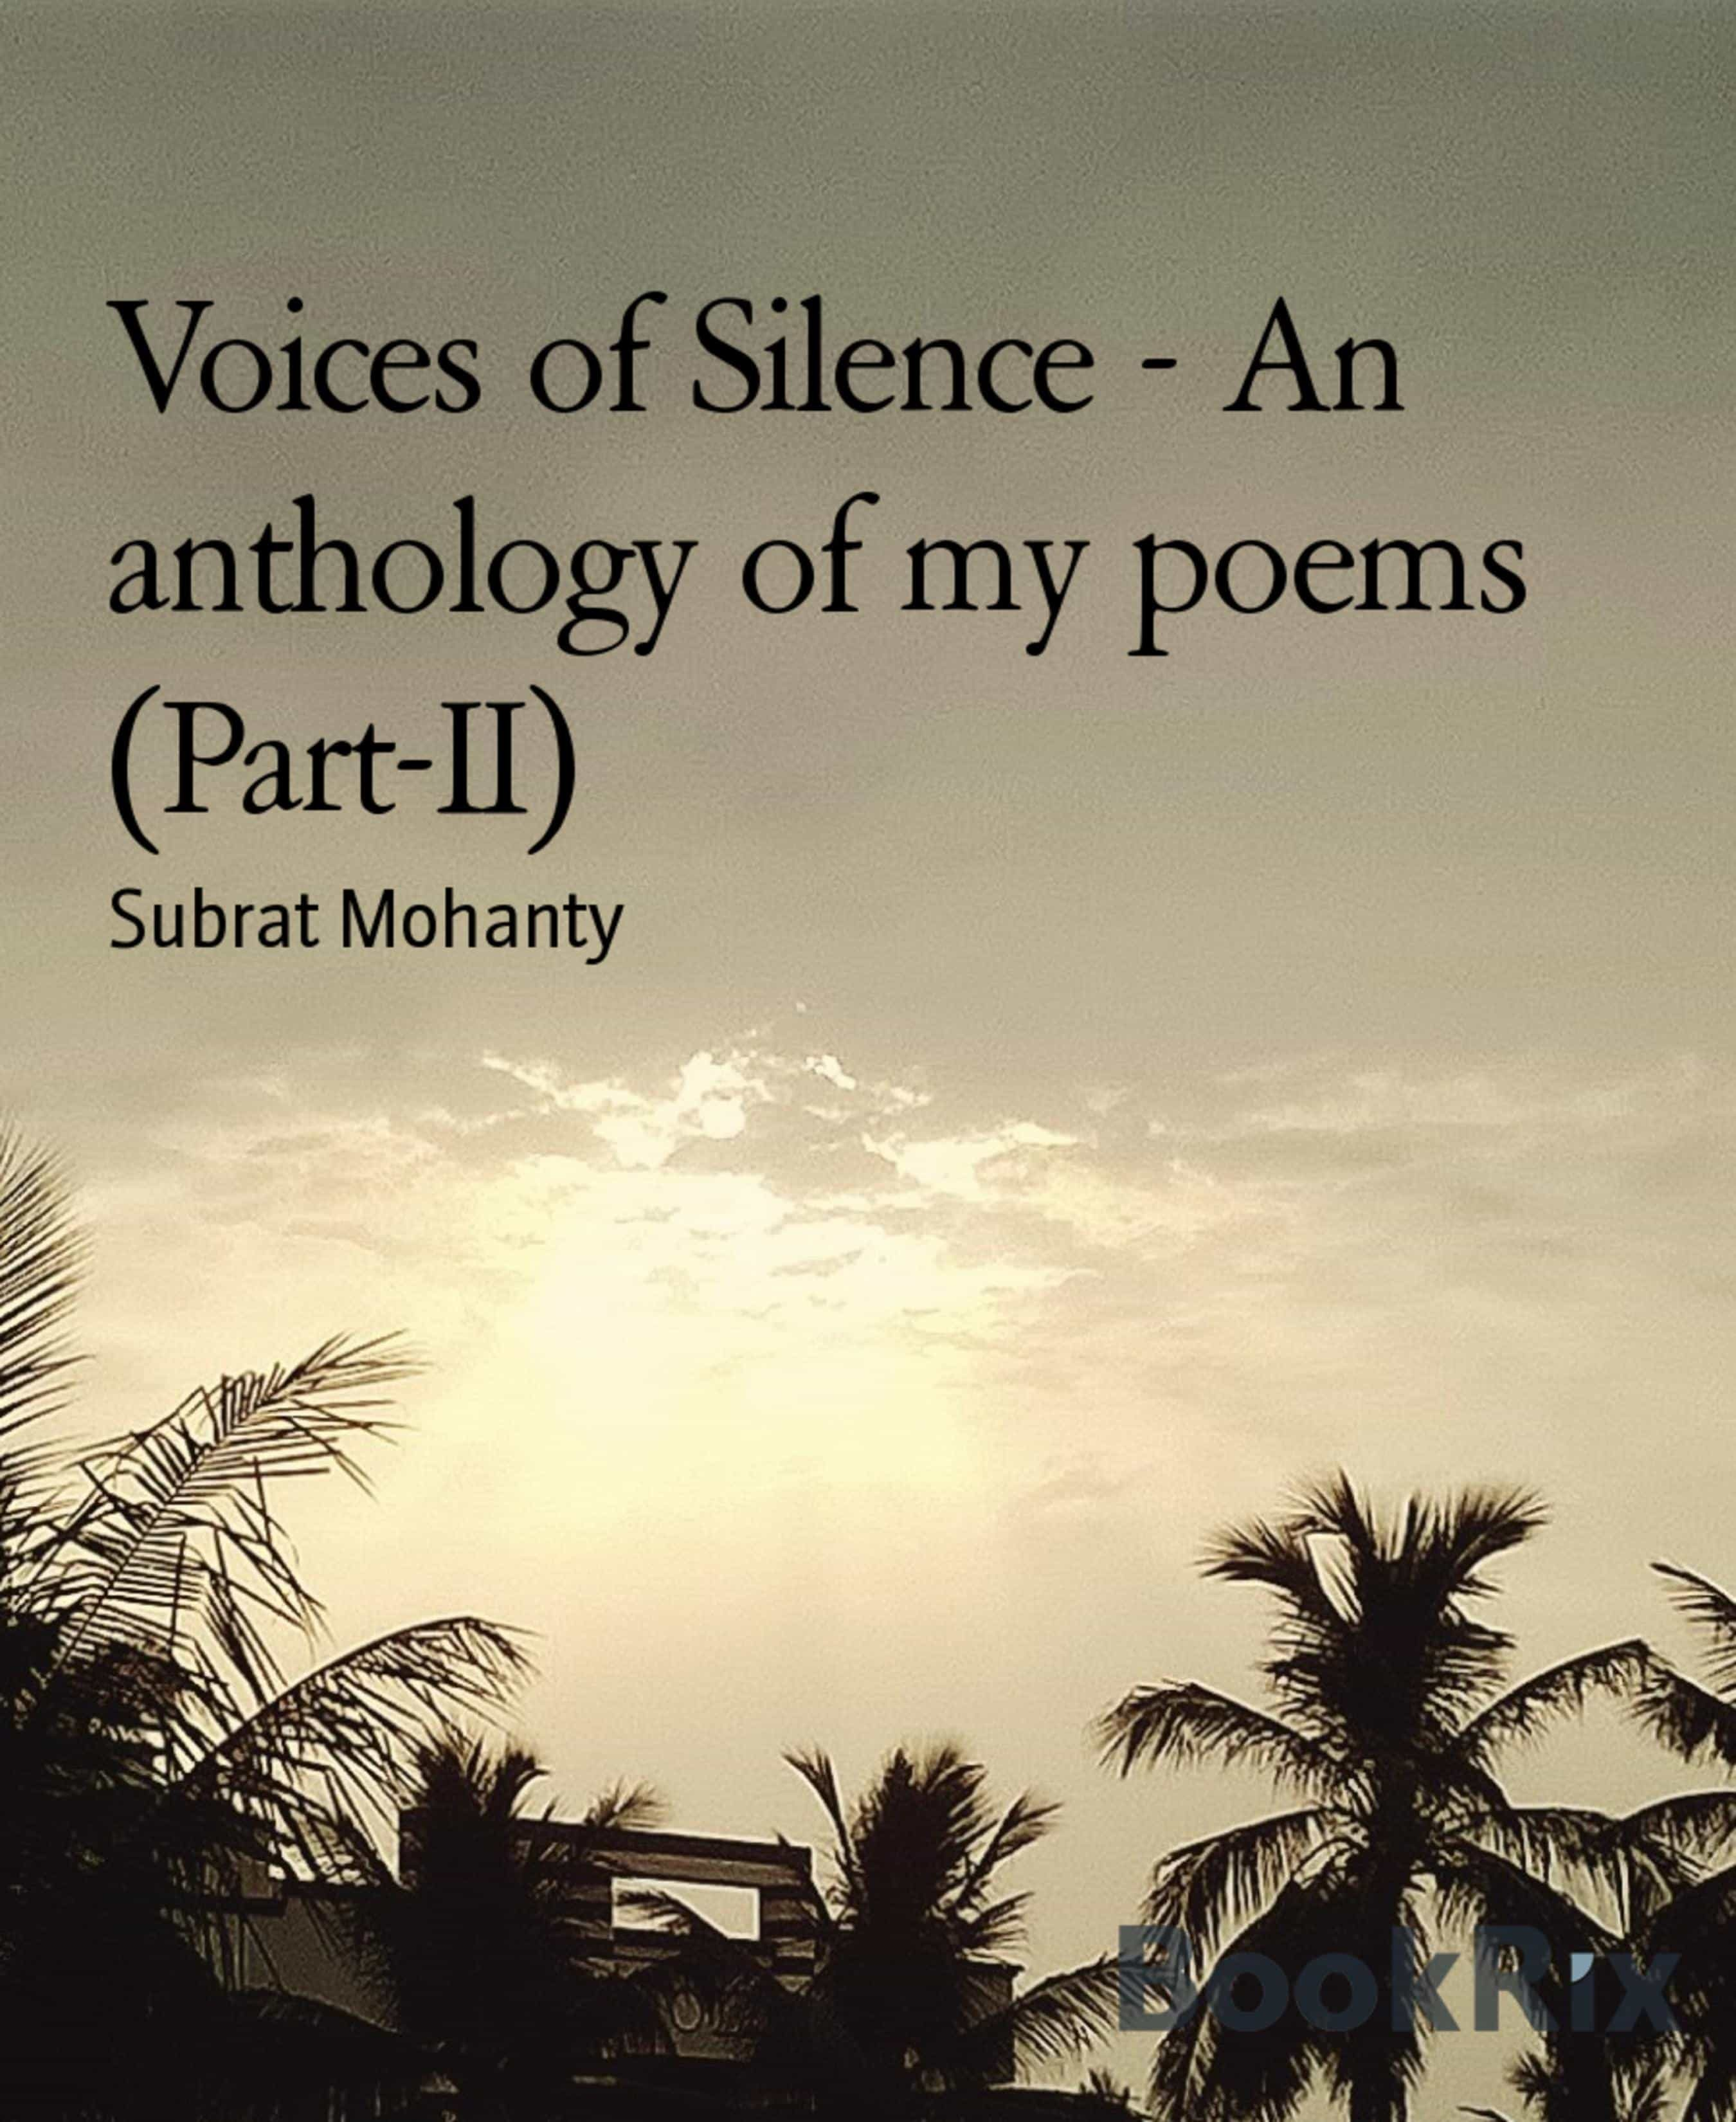 VOICES OF SILENCE - AN ANTHOLOGY OF MY POEMS (PART-II)